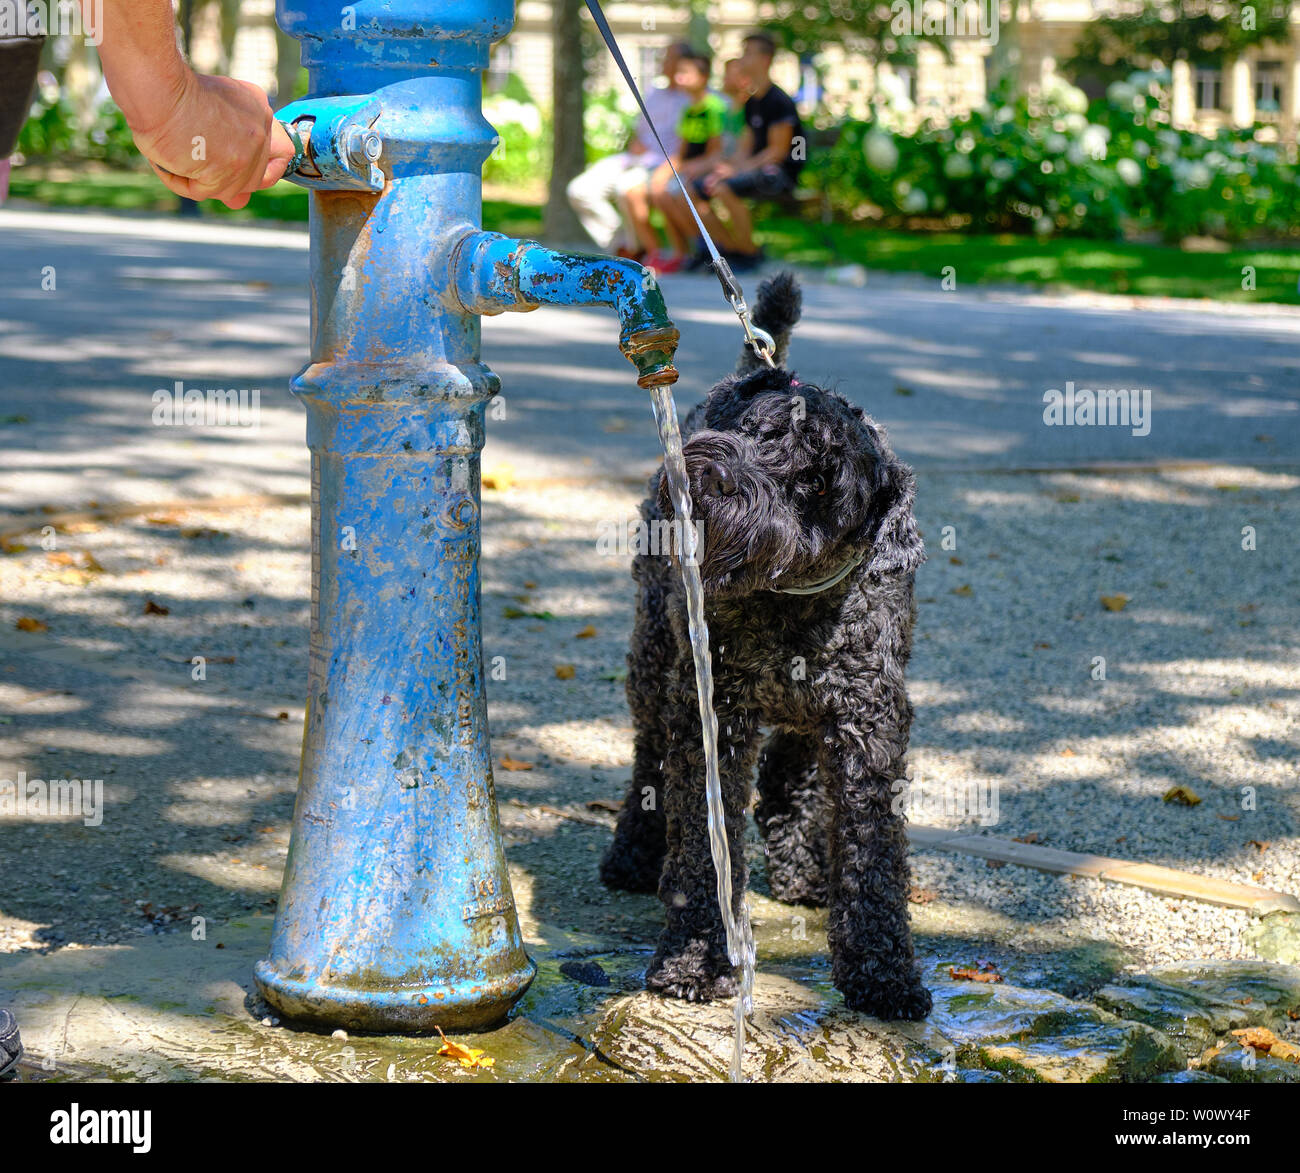 Black dog drinking from a public fountain in a park, to hydrate during the heat wave in Europe Stock Photo